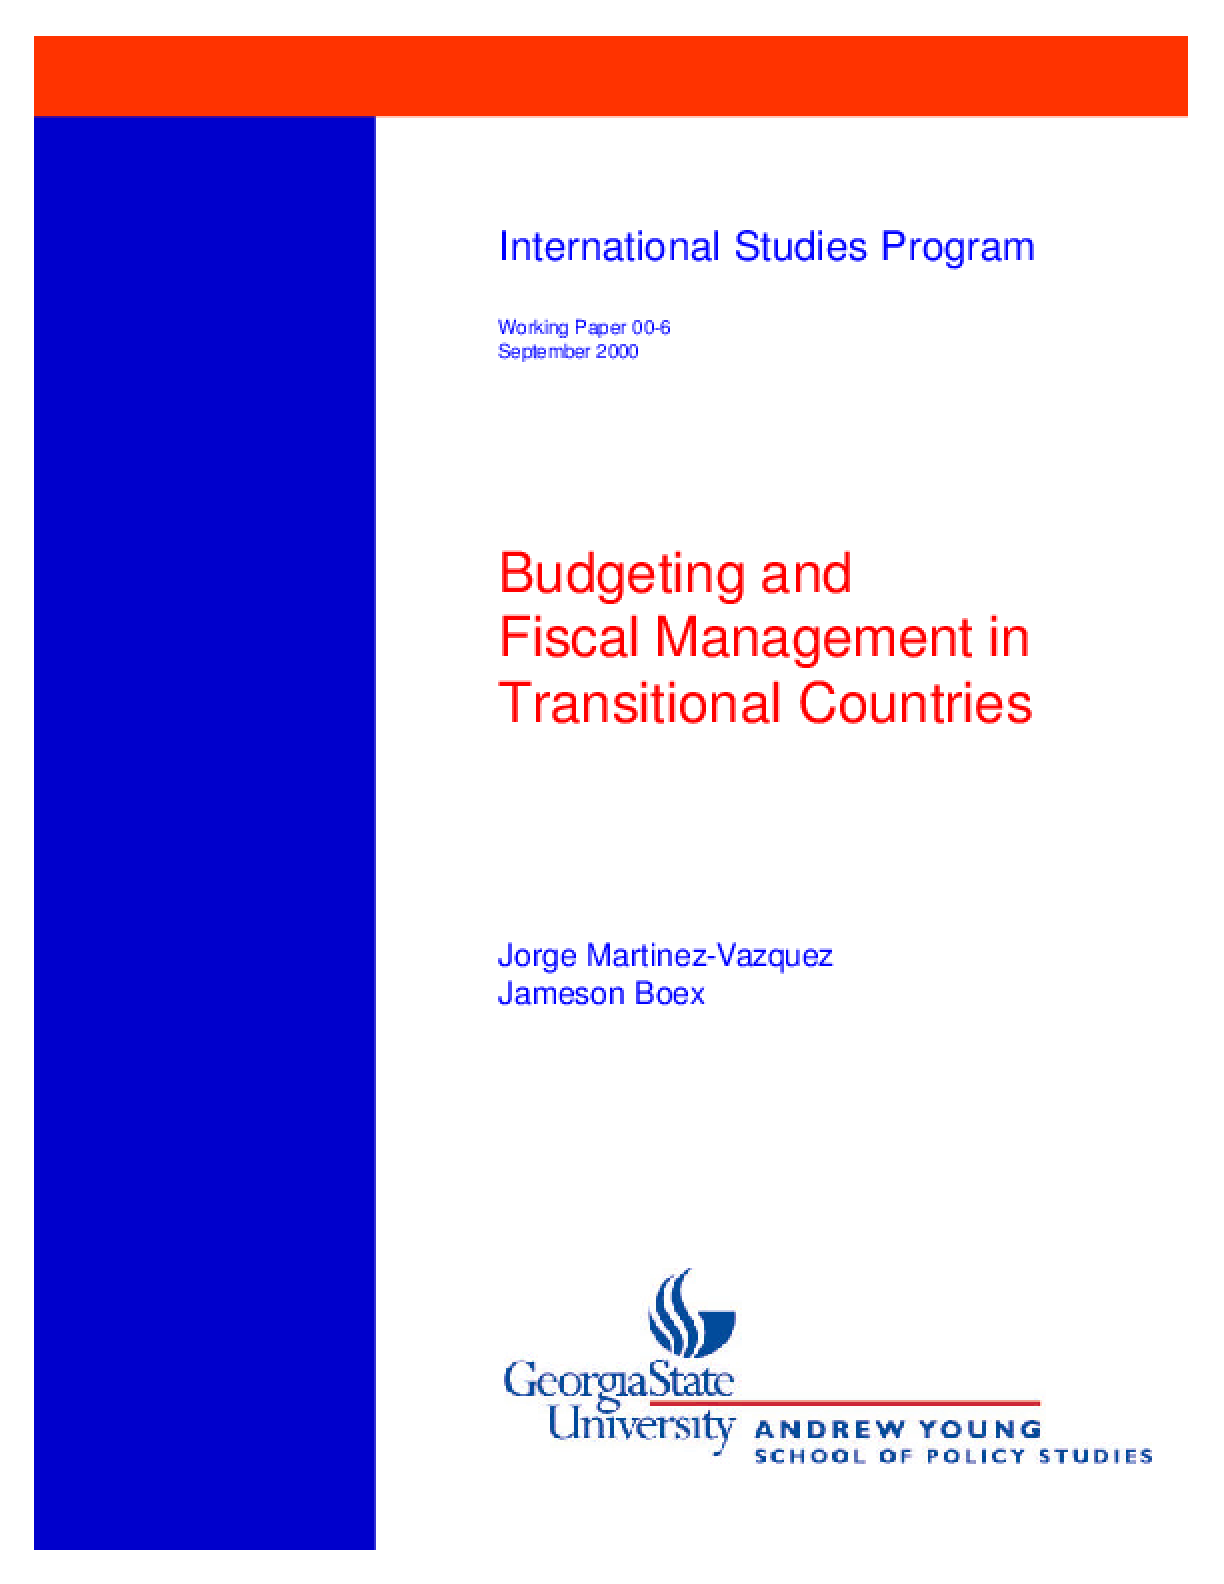 Budgeting and Fiscal Management in Transitional Economies